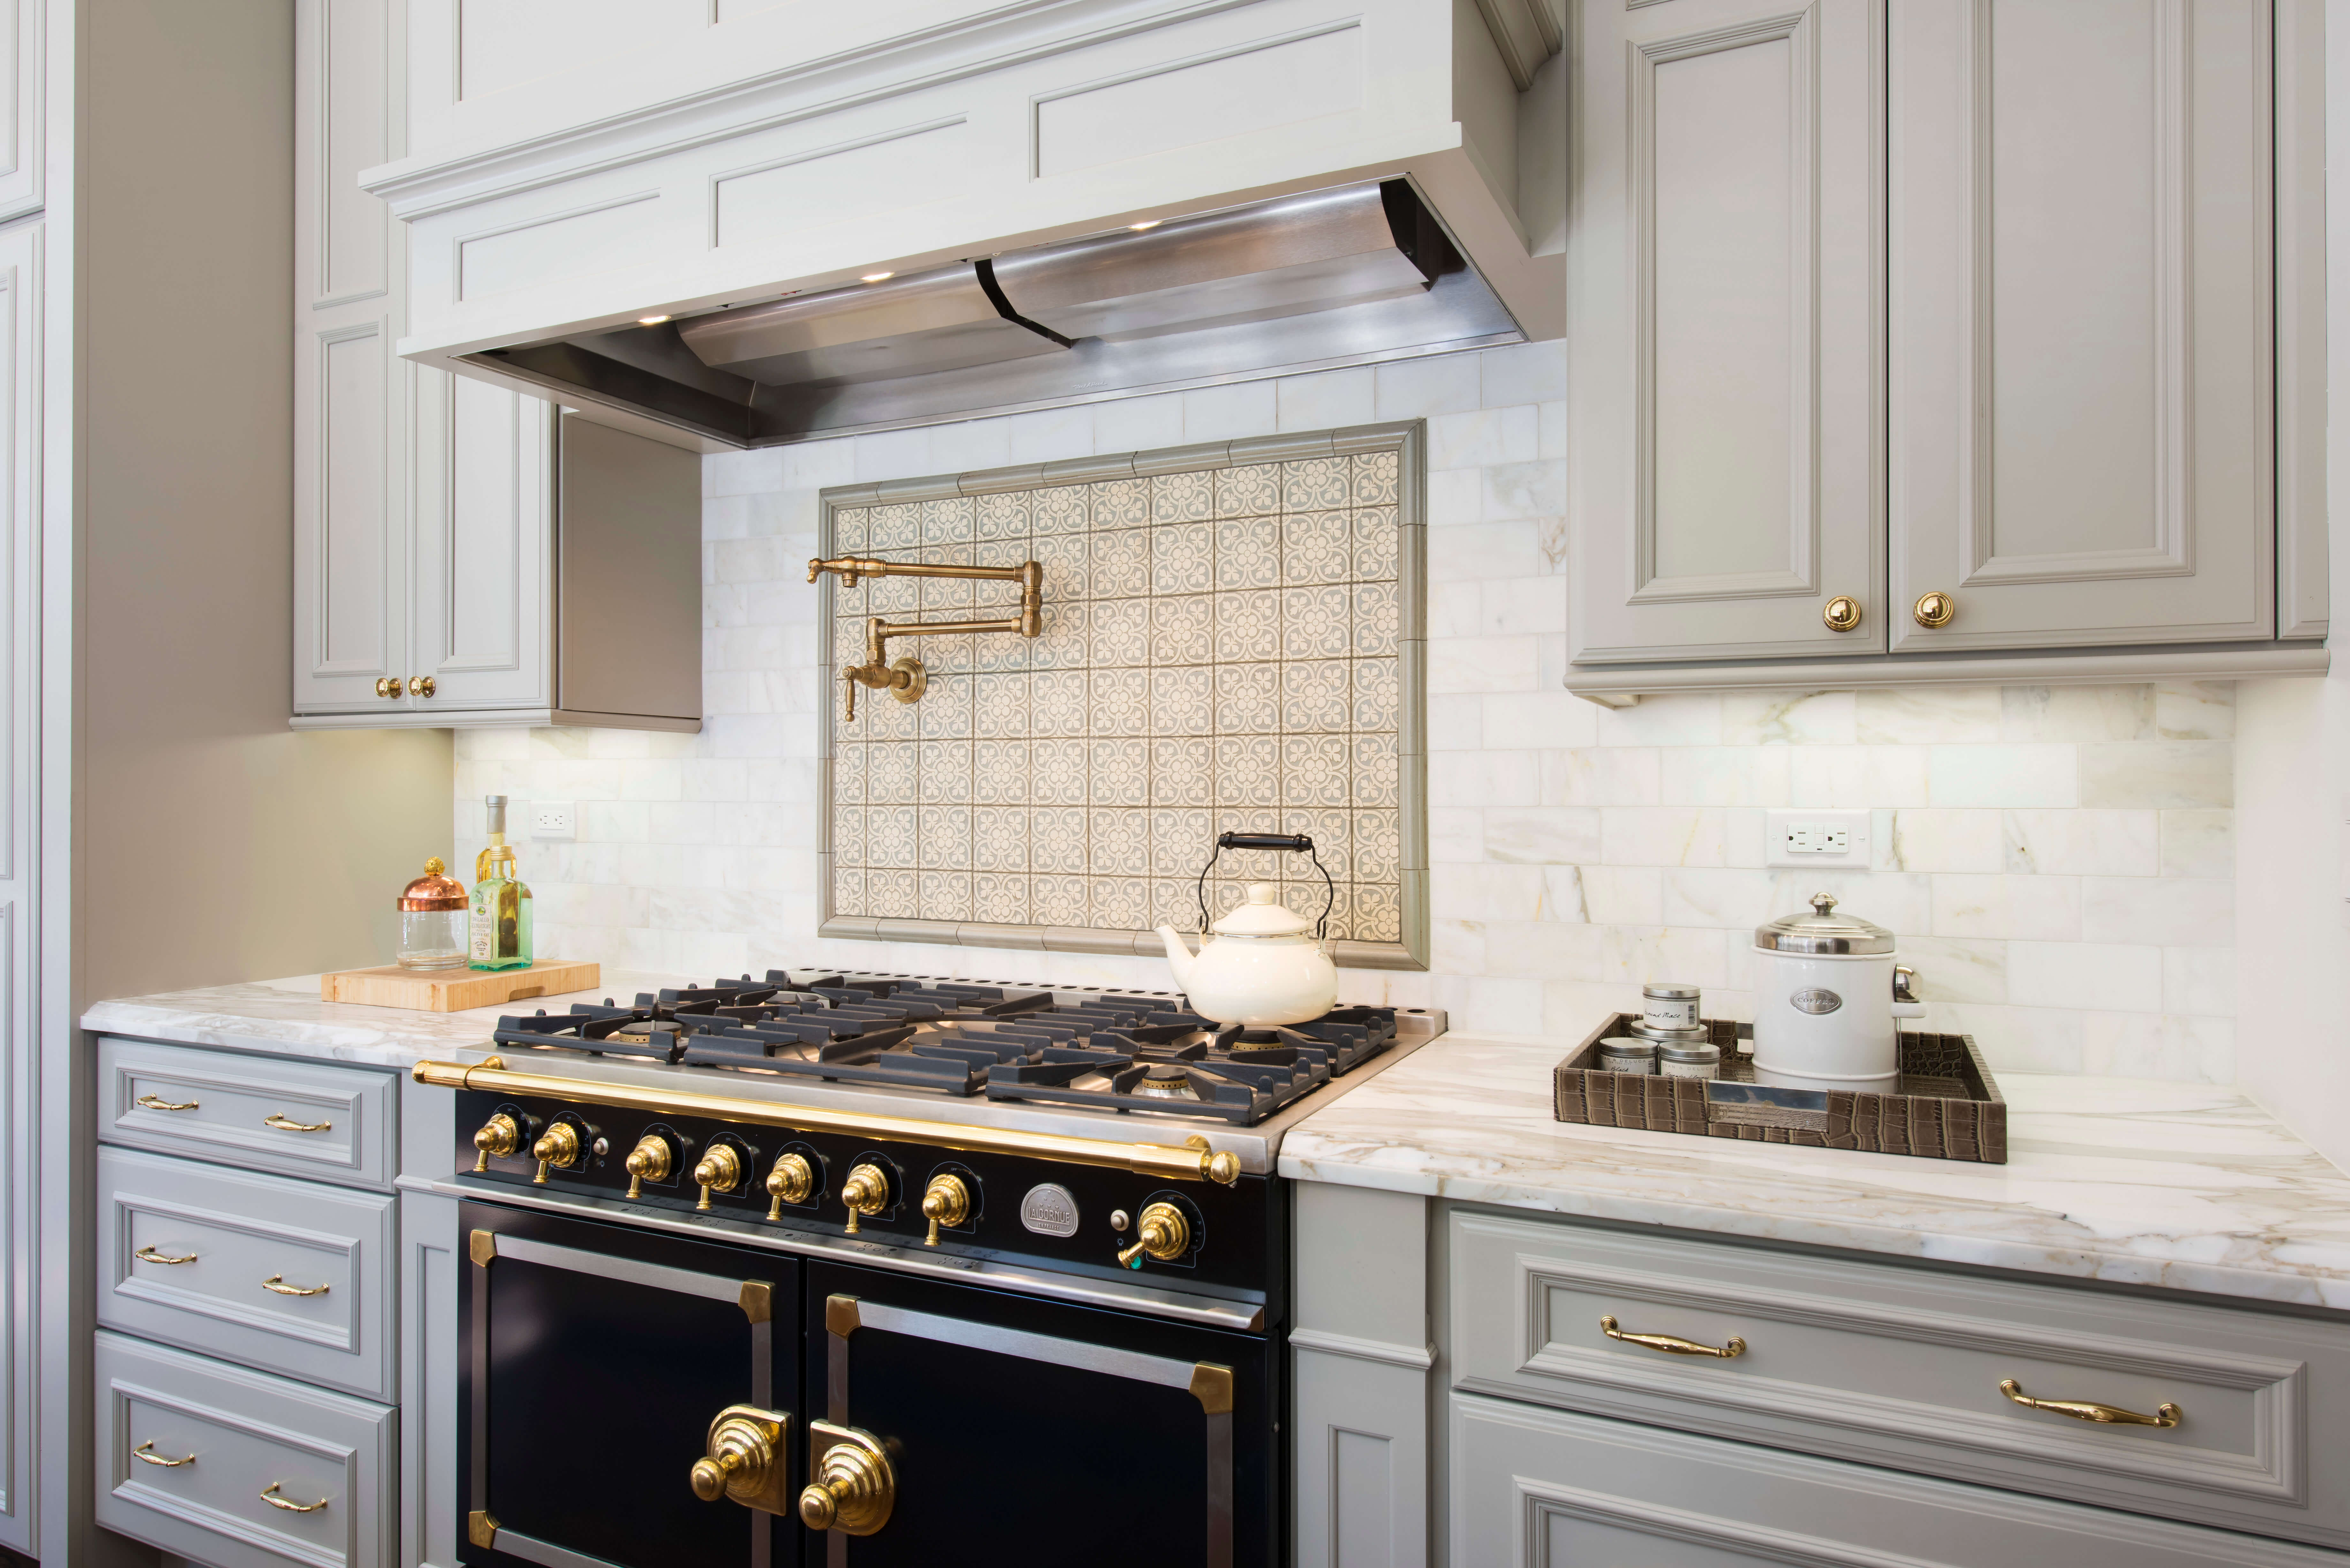 Beautiful slide-in range with double ovens. Dura Supreme kitchen design by Gilmans Kitchen and Bath, California.